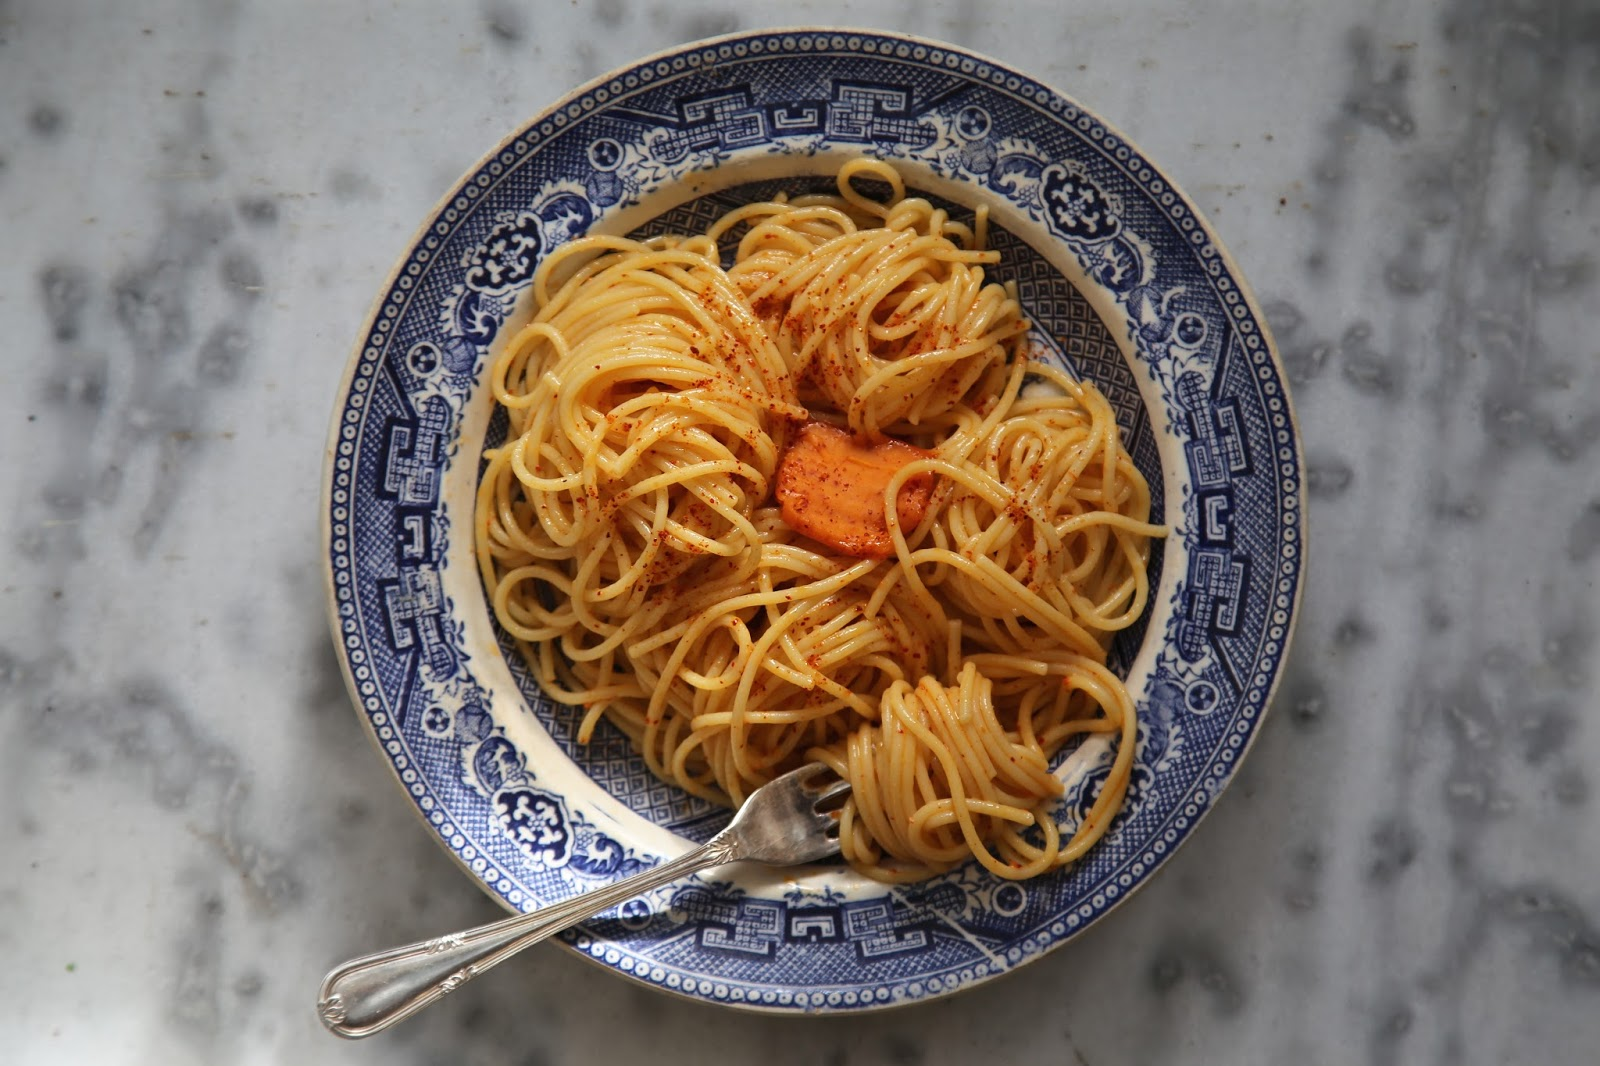 World Pasta Day recipe: Here's how to make spaghetti with espelette butter